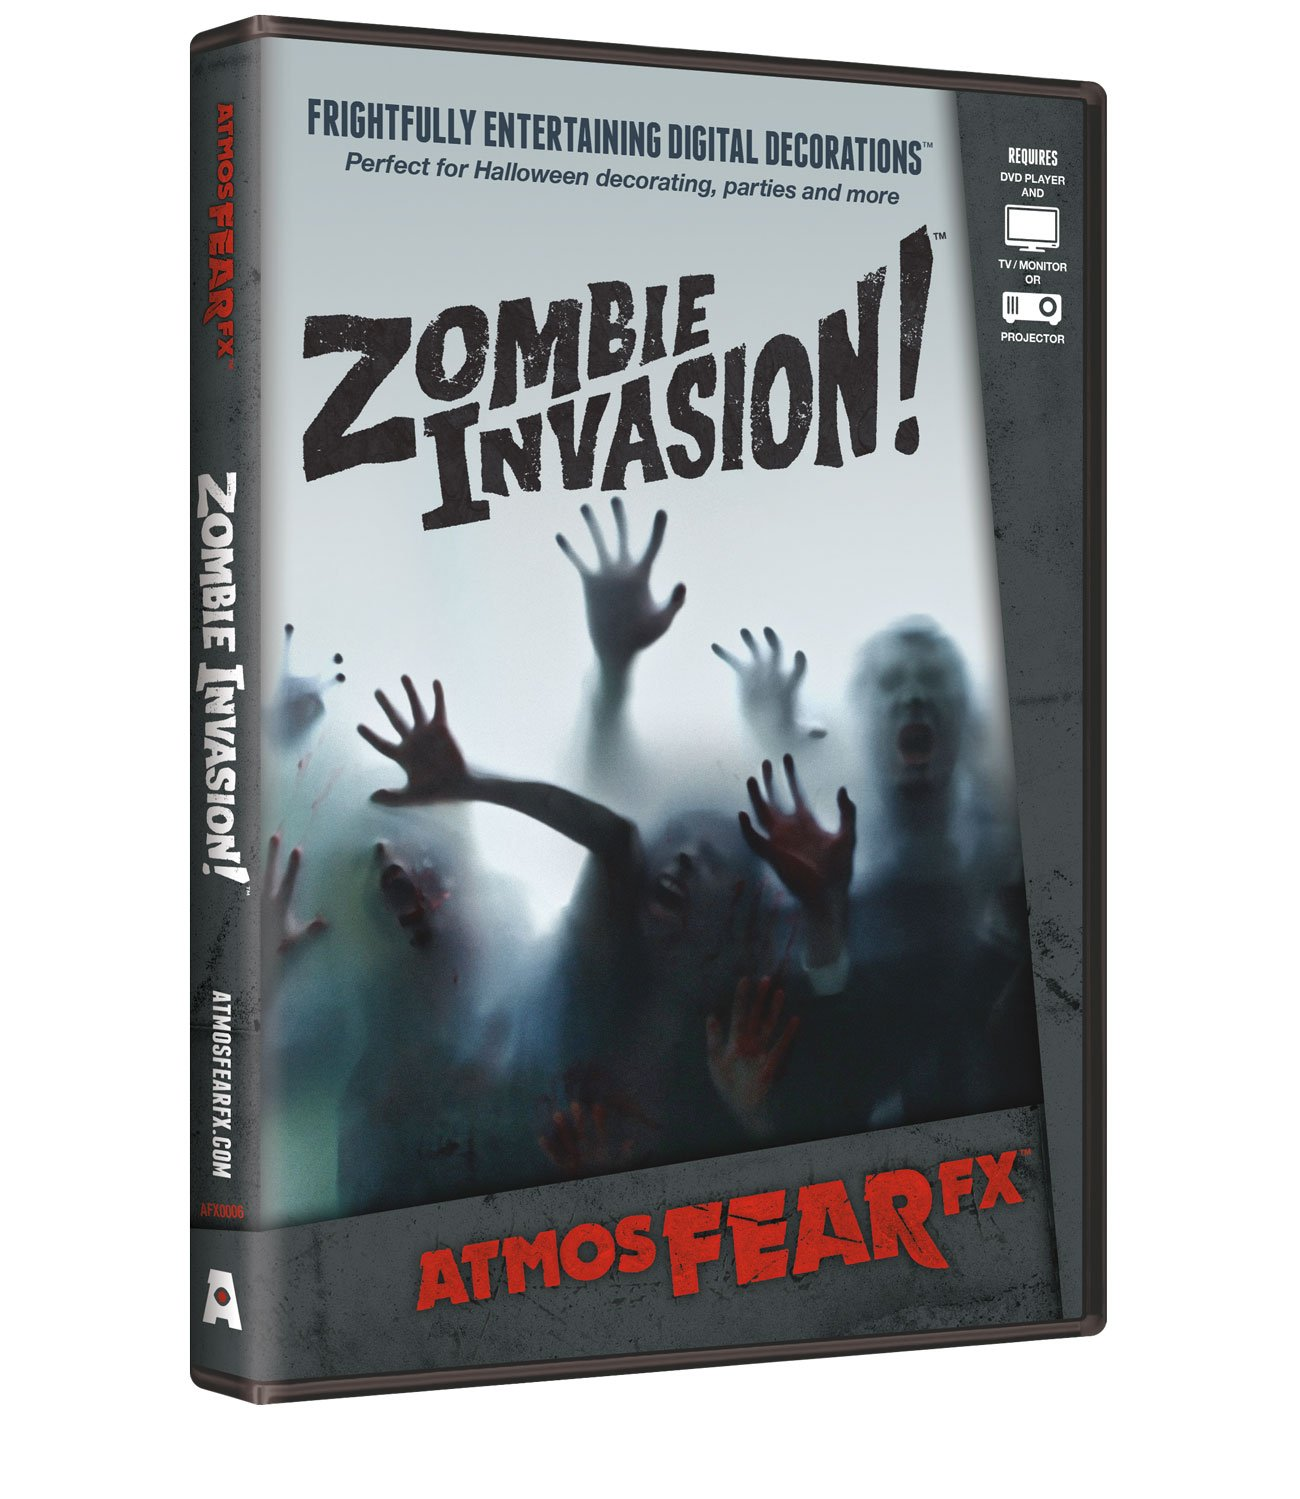 AtmosFX Zombie Invasion! Digital Decorations DVD for Halloween Holiday Projection Decorating by AtmosFX